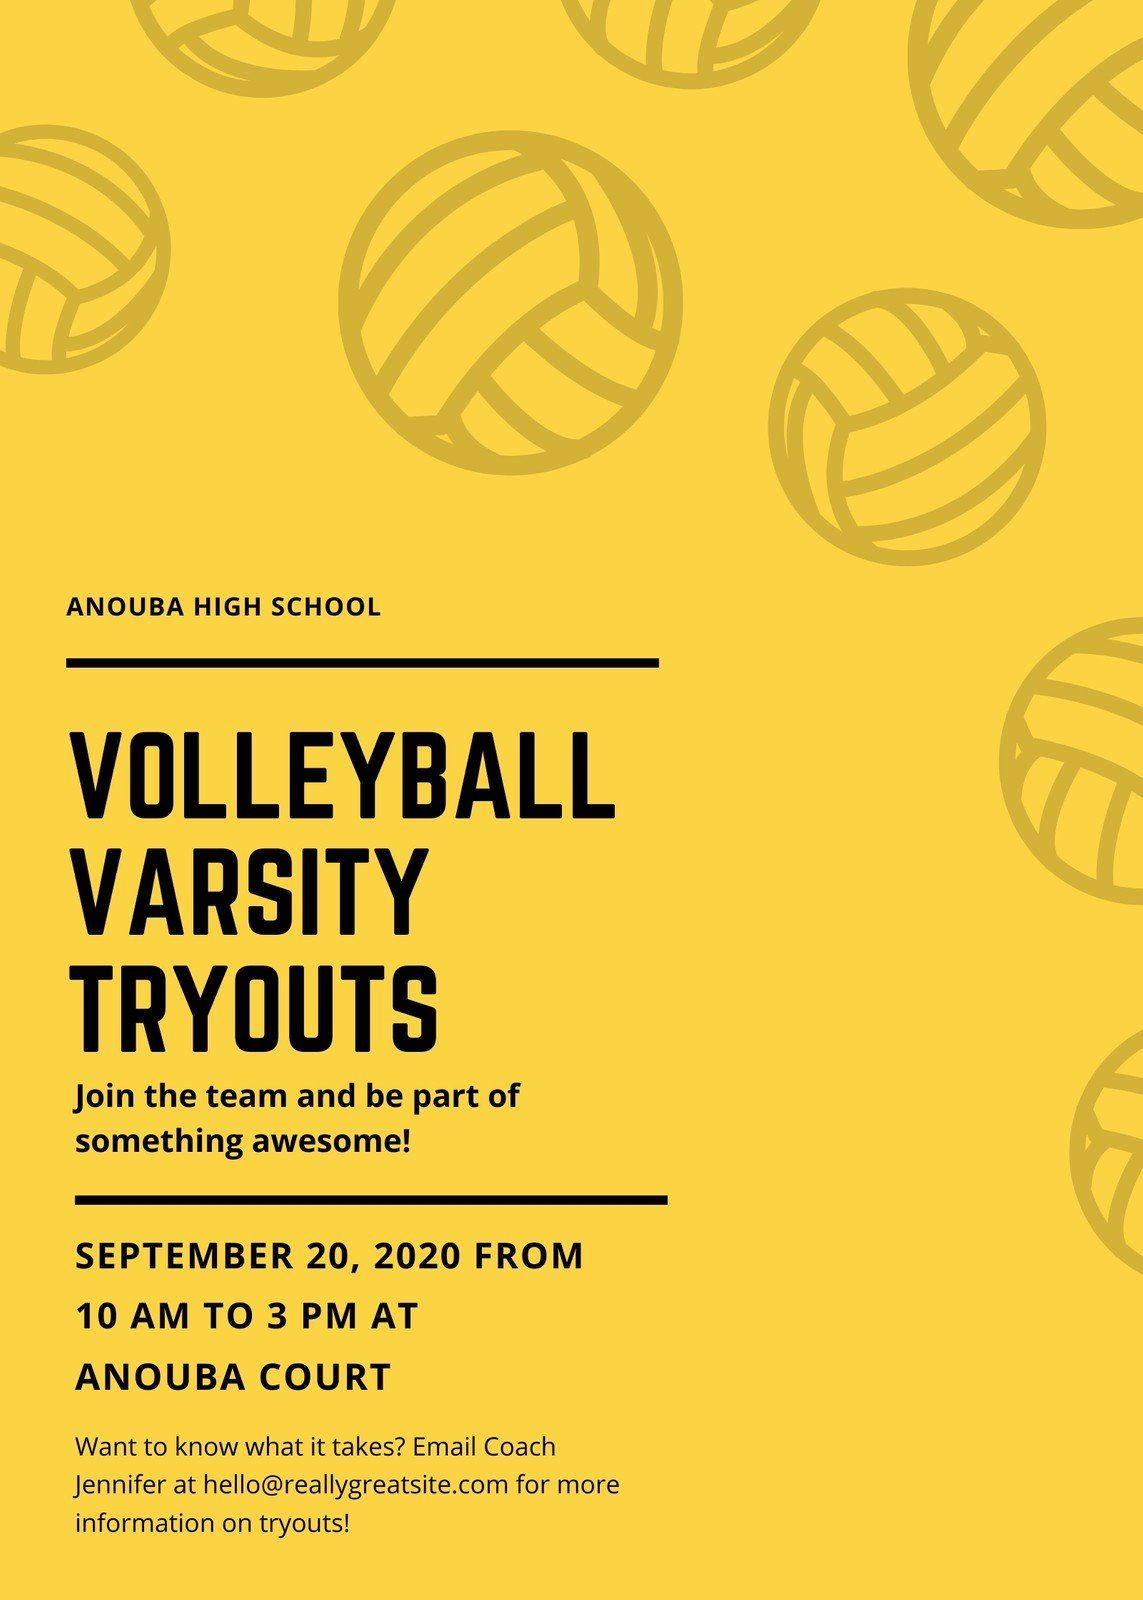 Black And Yellow Volleyball Icons Sports Flyer Templates By Canva Ad Volleyball Paid Icons Black Yellow In 2020 Sports Flyer Flyer Flyer Template